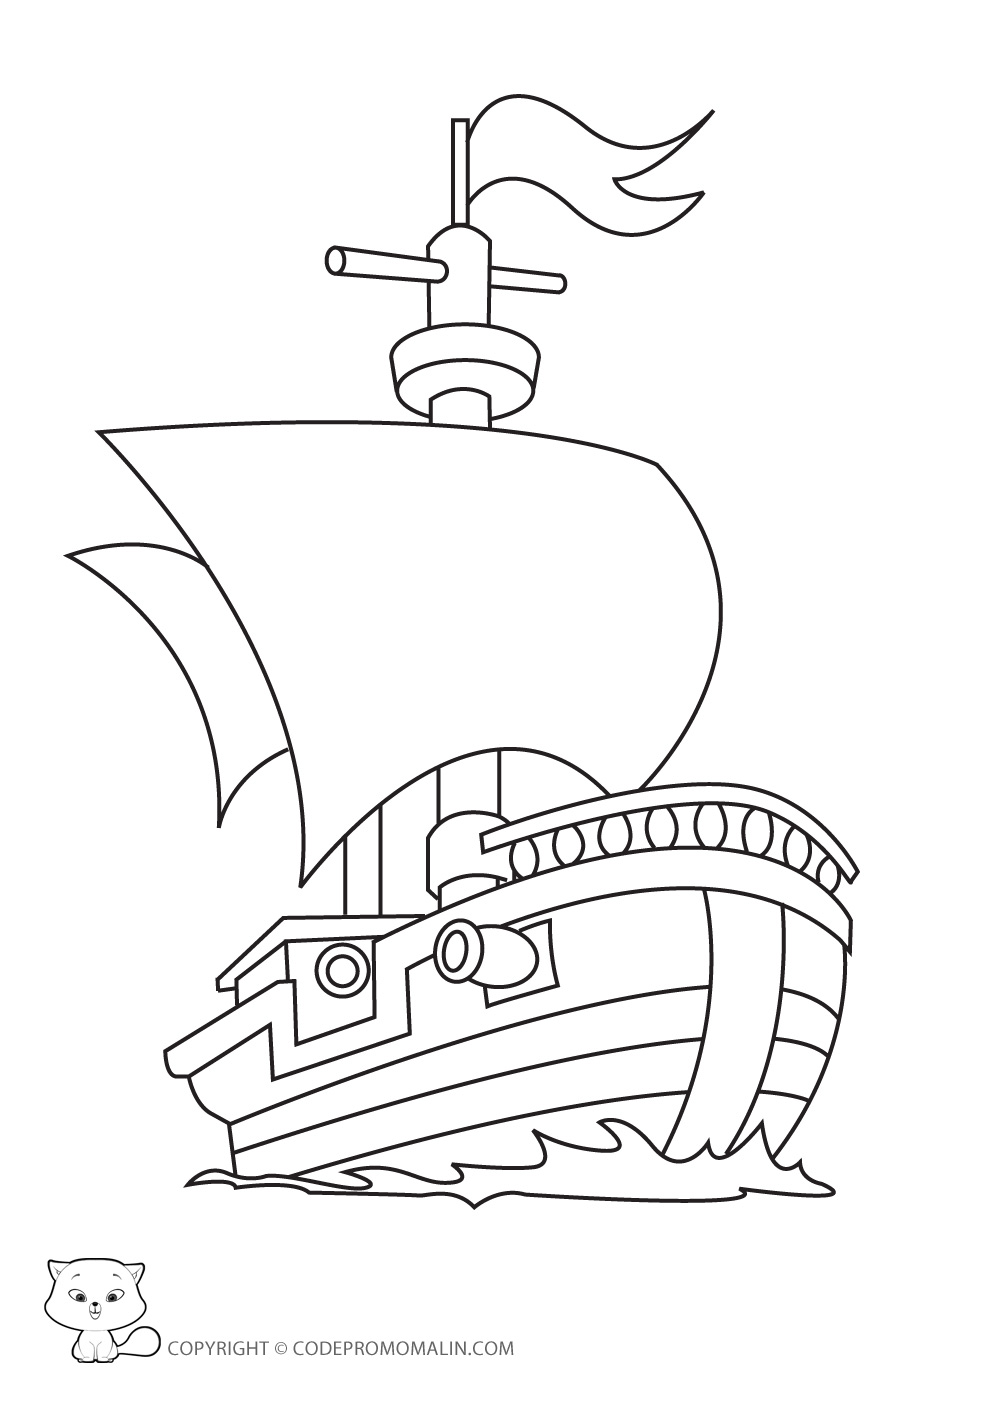 pirate : coloriage